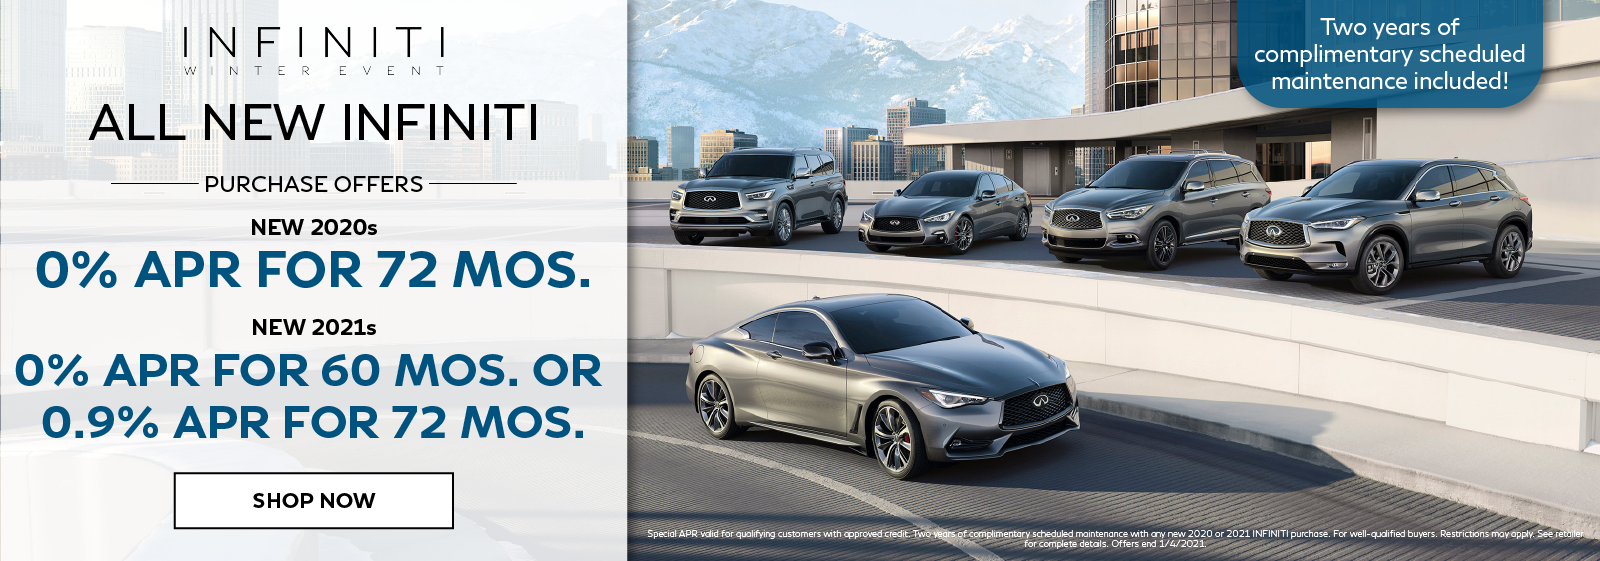 Well-qualified buyers get 0% APR for 72 months on all new 2020 INFINITI or 0% APR for 60 months or 0.9% APR for 72 months on all new 2021 INFINITI. Click to shop now.